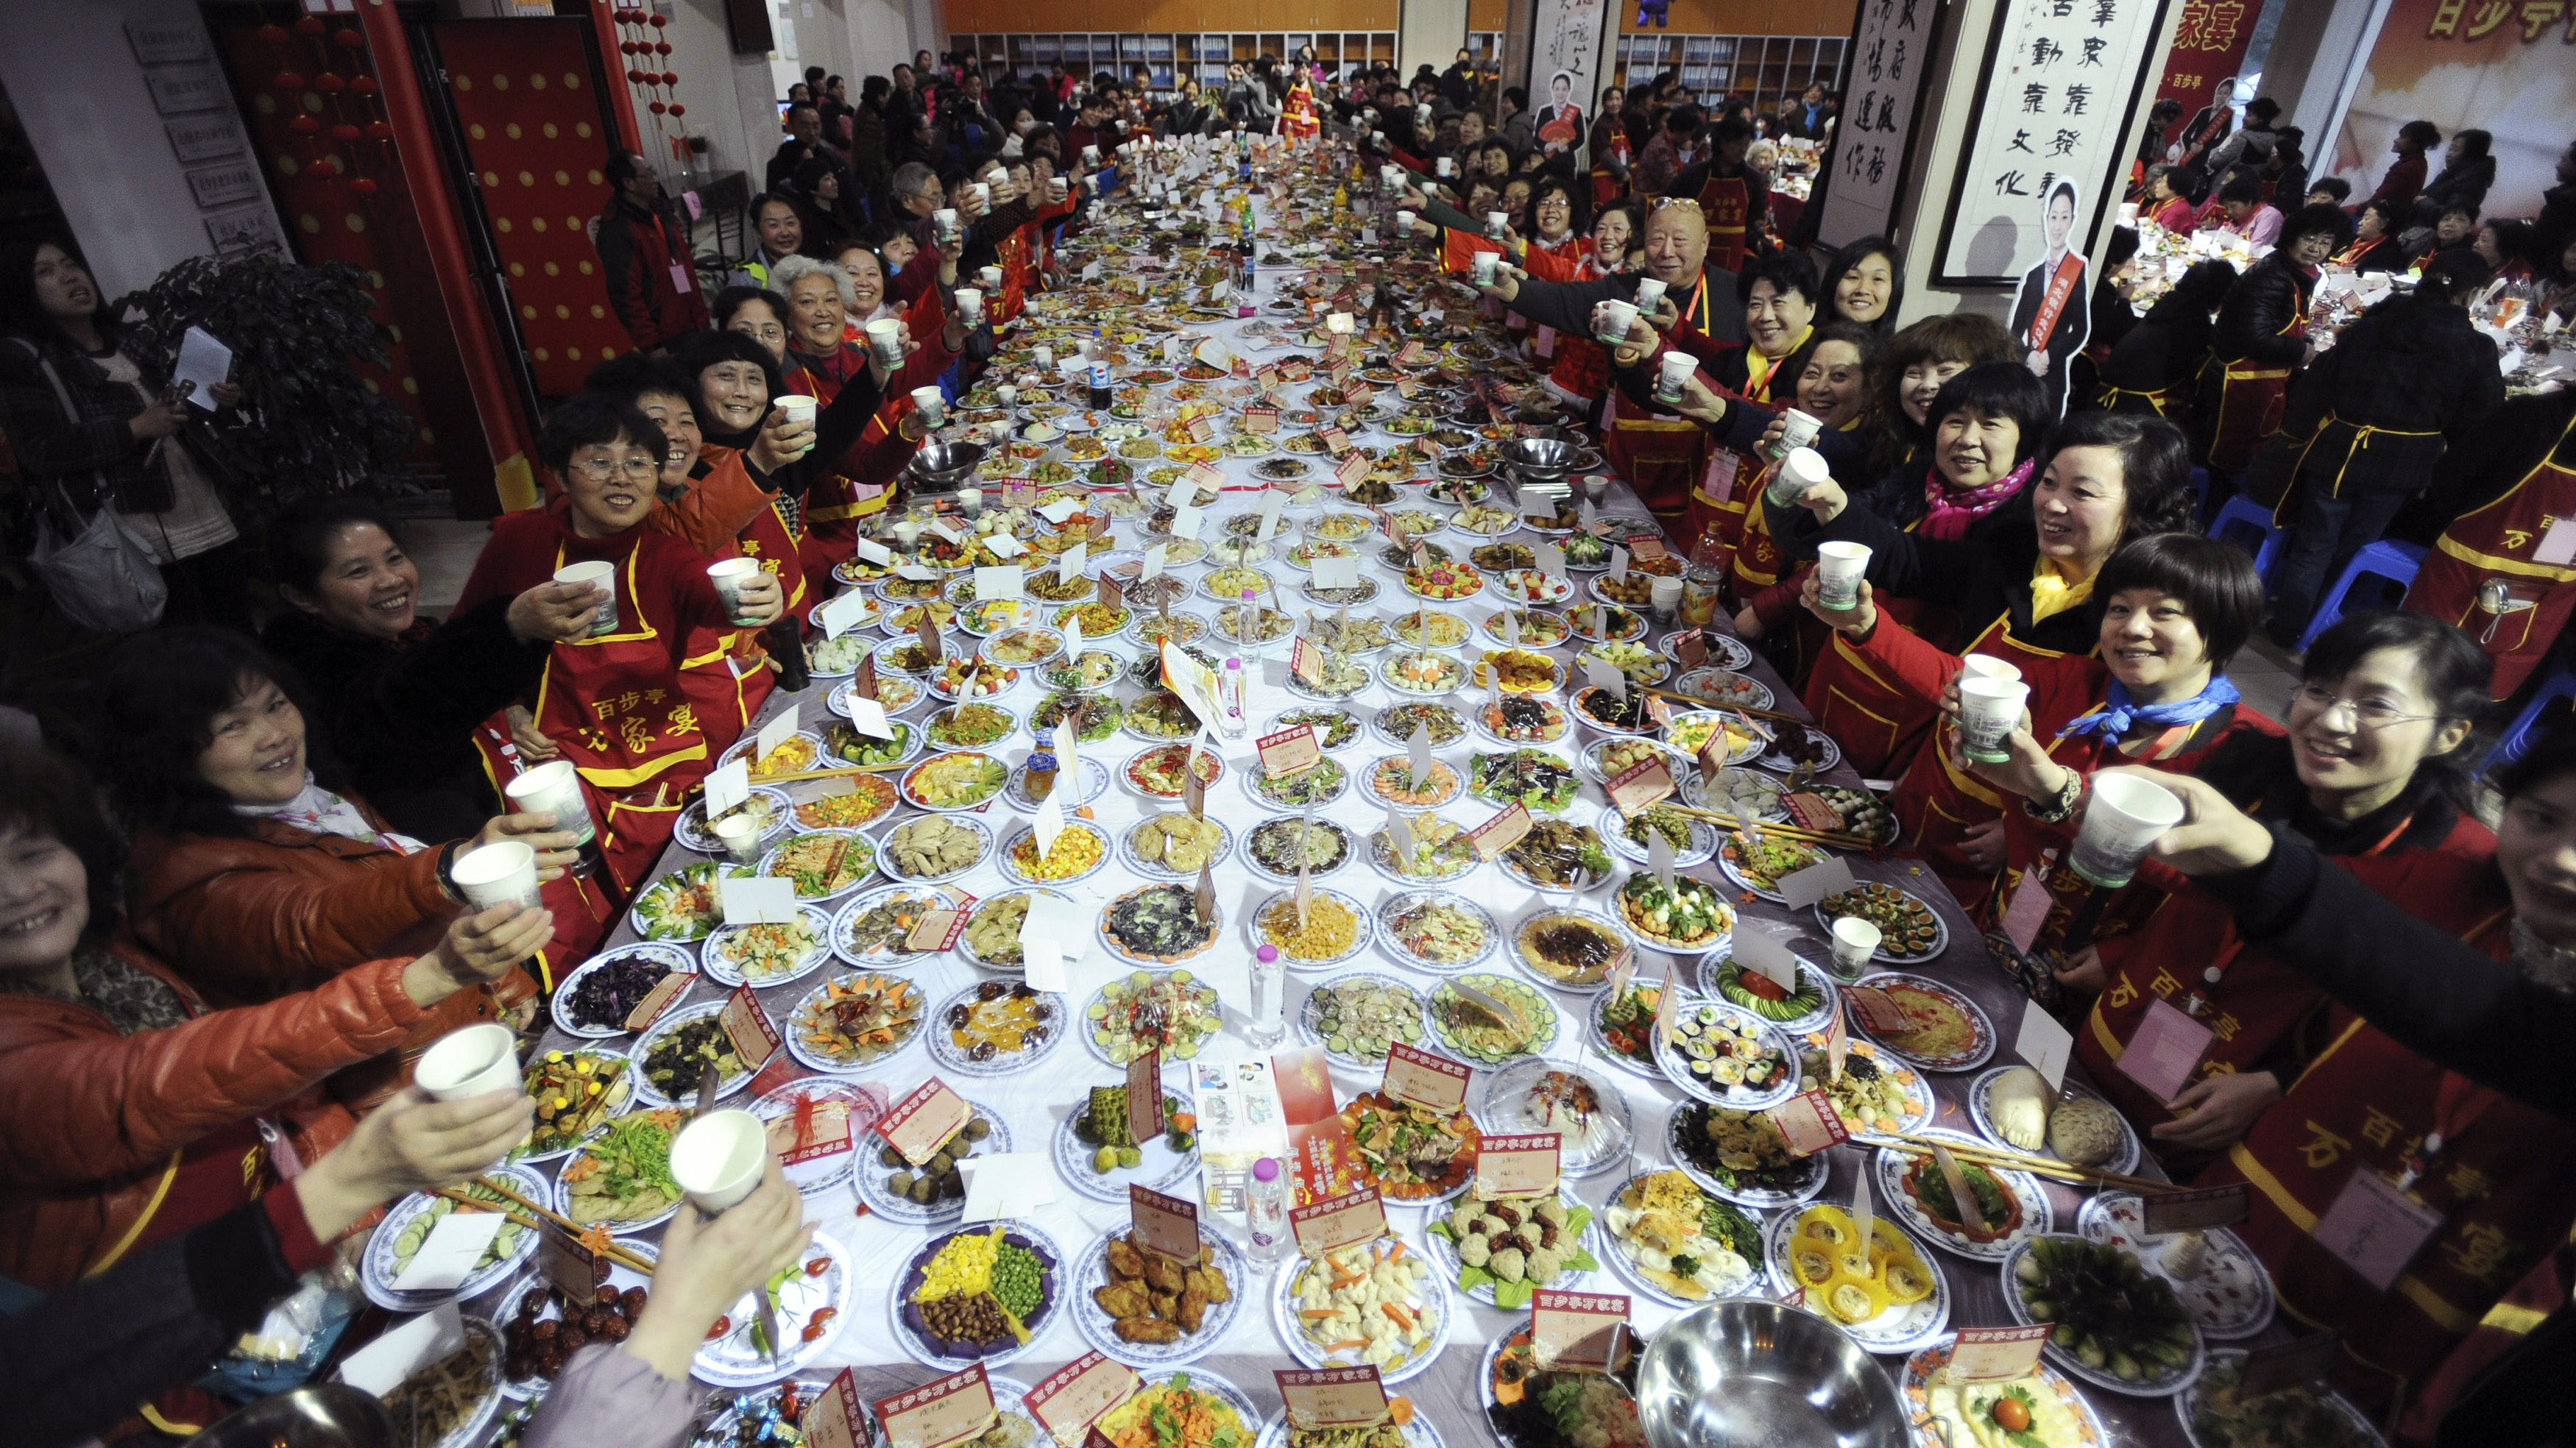 """Residents raise their glasses as they pose for photographs at a table full of dishes during a """"Ten thousand families dinner"""" organized by a local community to celebrate the upcoming Chinese Lunar New Year, in Wuhan, Hubei province January 24, 2014. A residential community in Wuhan hosted the mass dinner on Friday serving over 30,000 people with over 11,000 dishes of food cooked by the families of the community, local media reported. Picture taken January 24, 2014.  REUTERS/China Daily"""